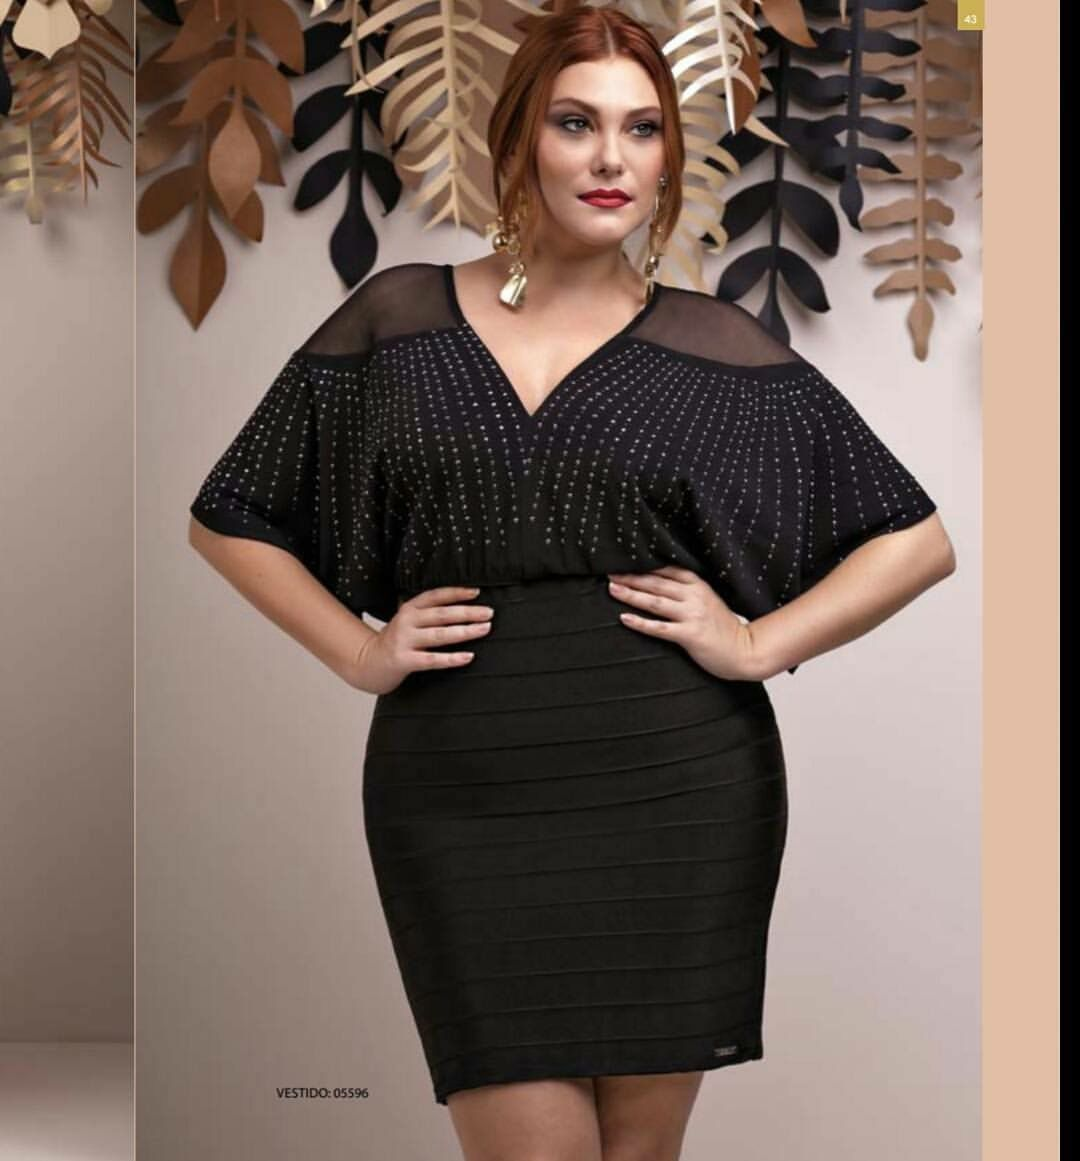 vestido plus size curto bandagem com aplicações